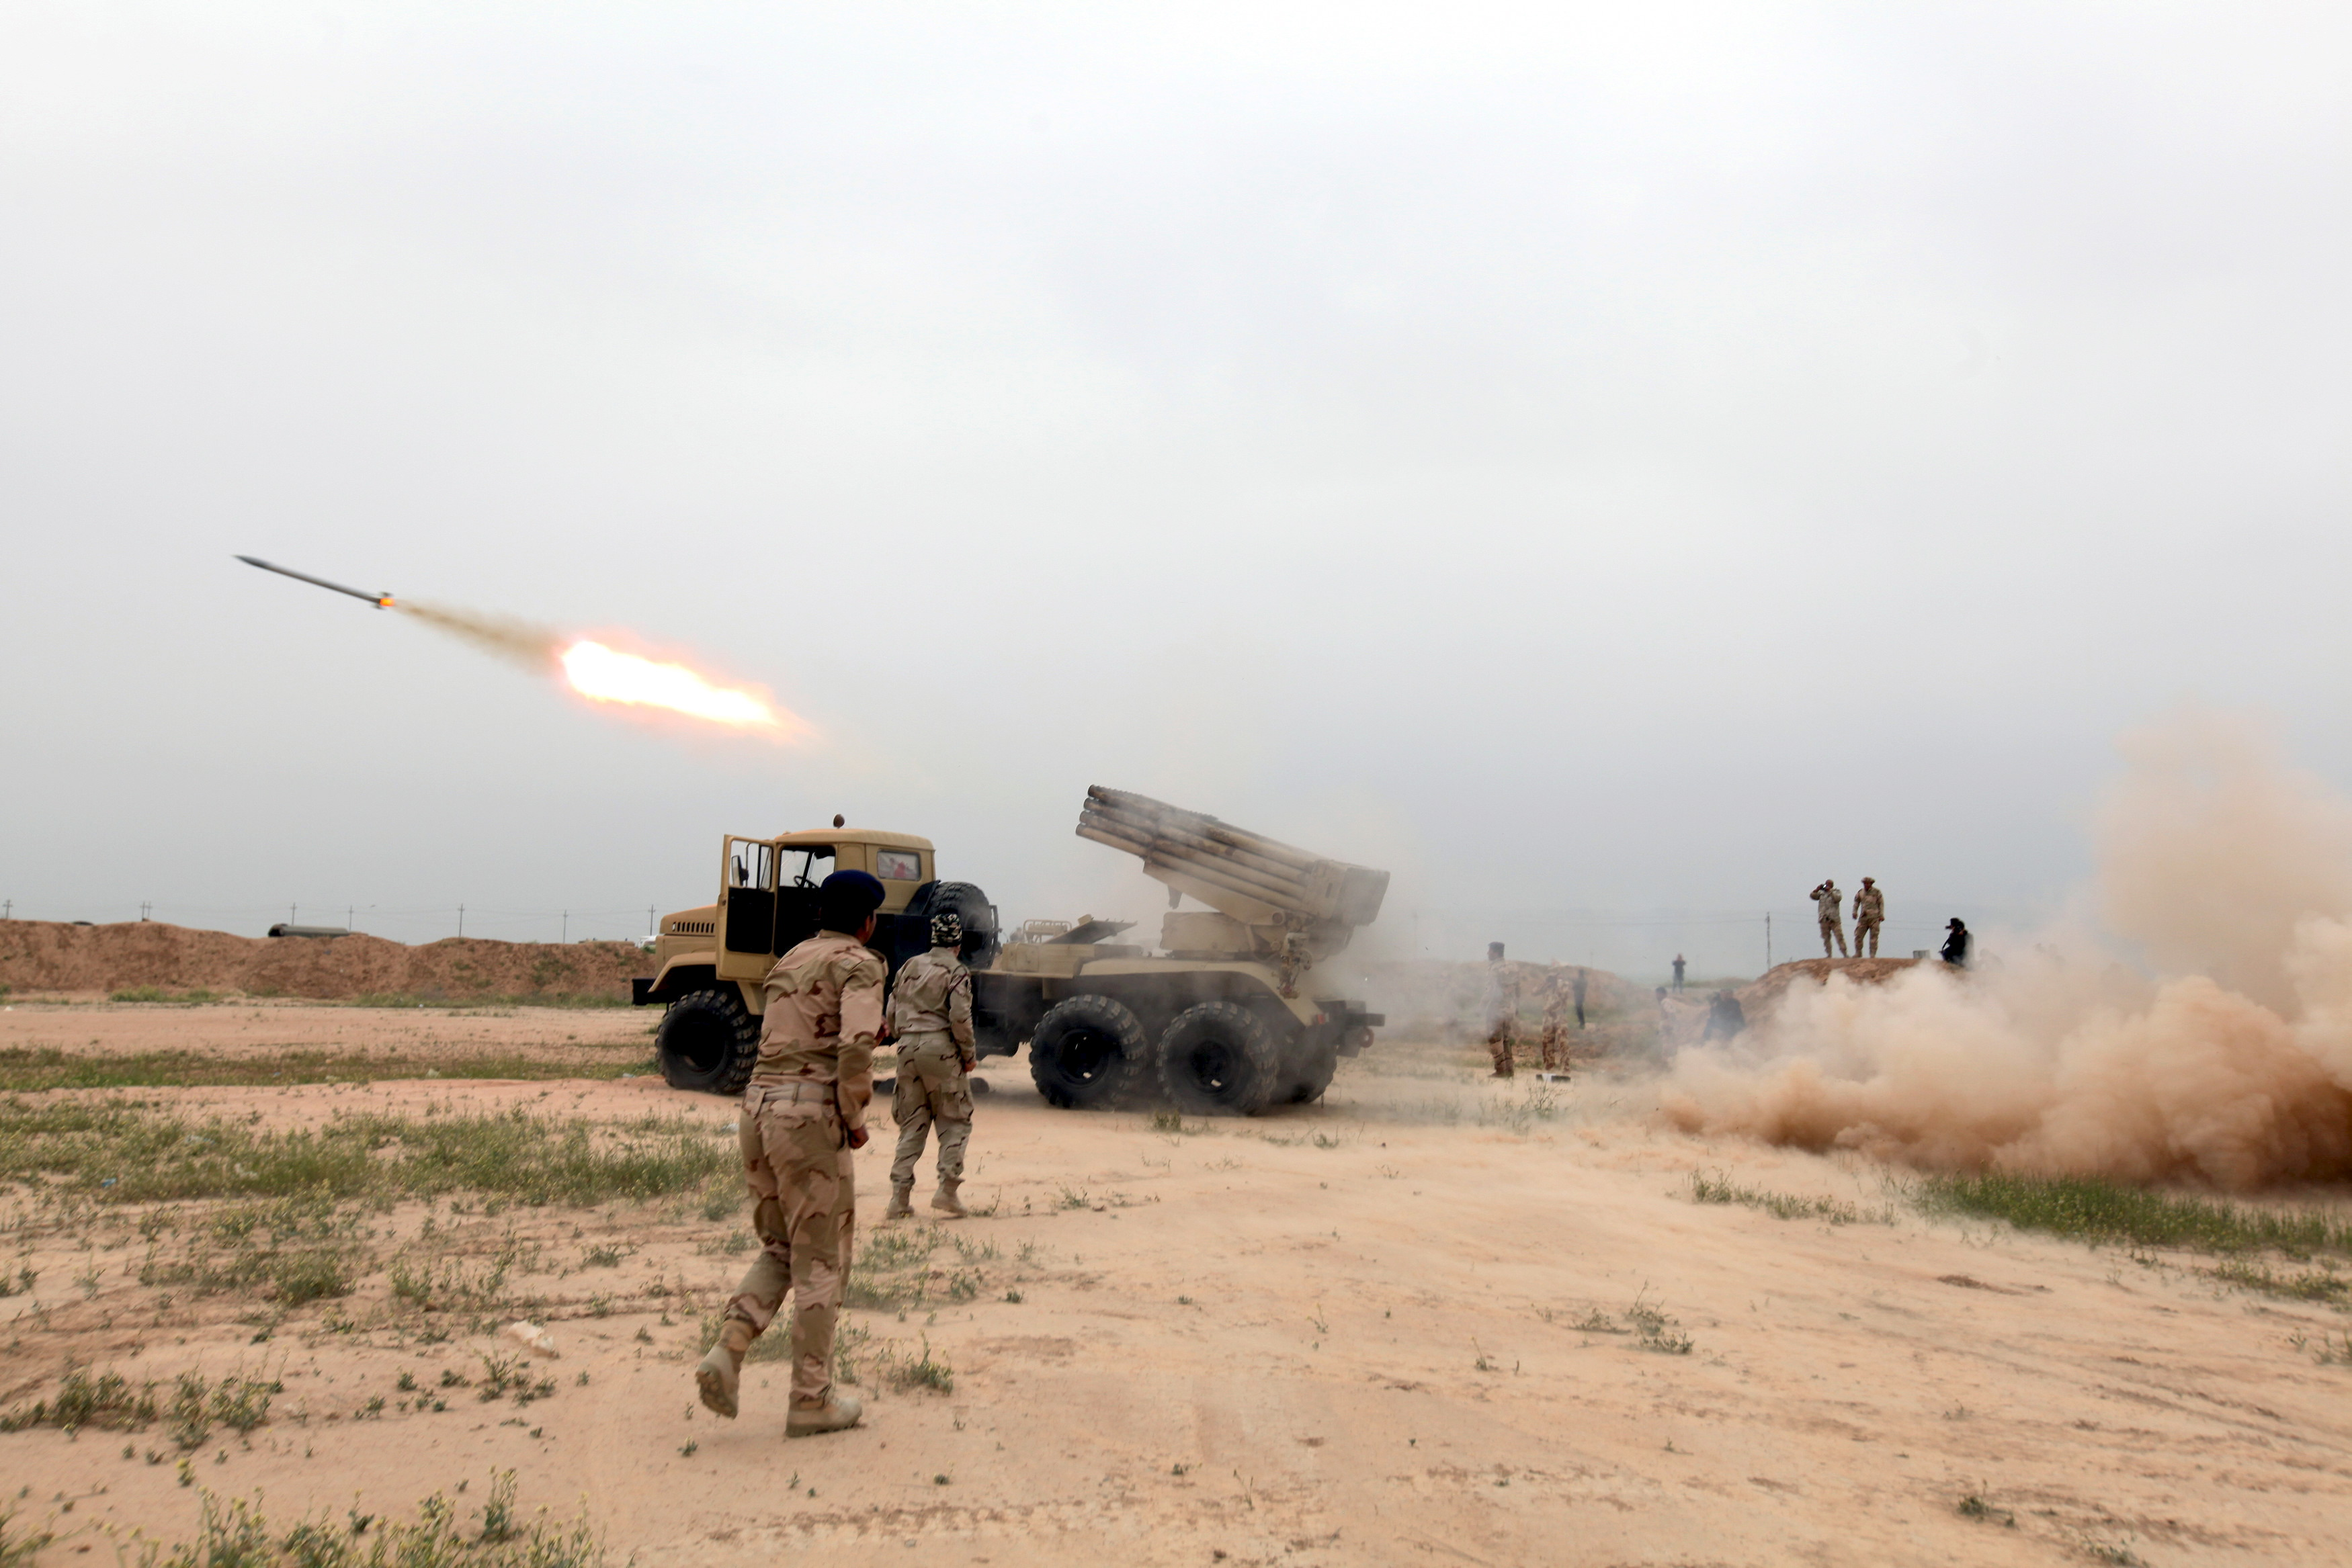 Iraqi soldiers fire a rocket toward ISIS militants on the outskirt of Makhmour, south of Mosul, Iraq, on March 25, 2016